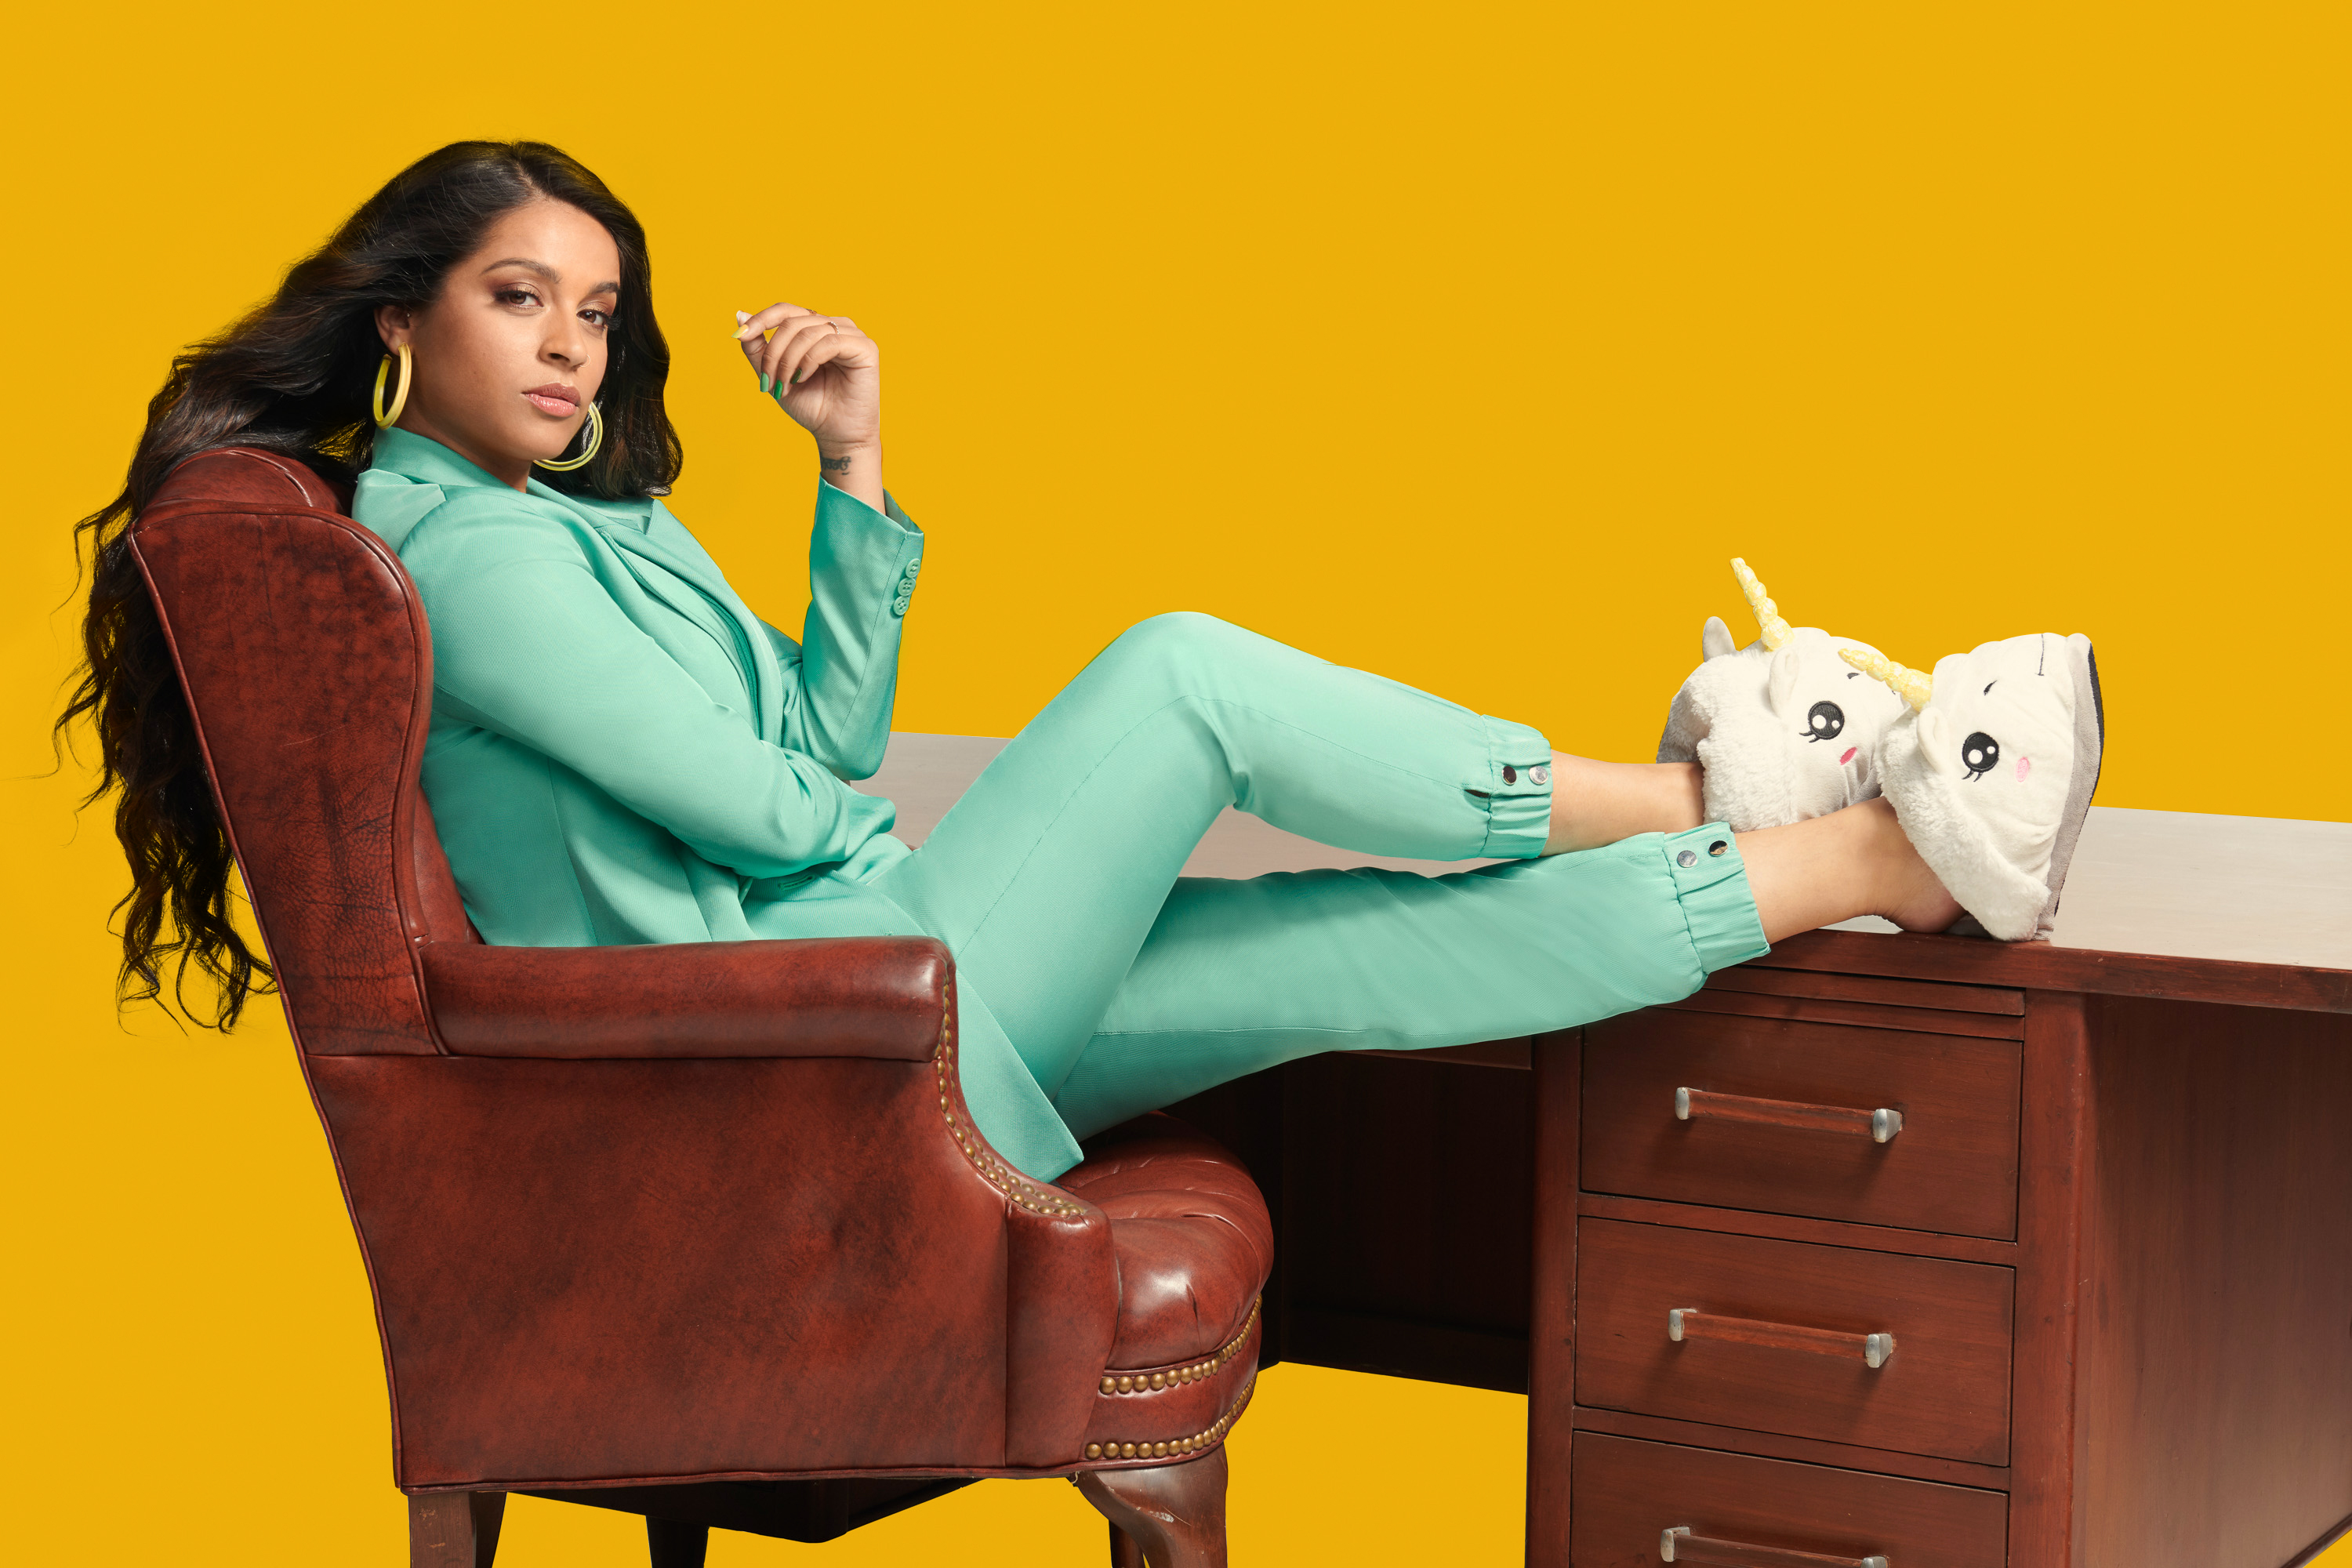 What to expect from NBC's 'A Little Late With Lilly Singh'